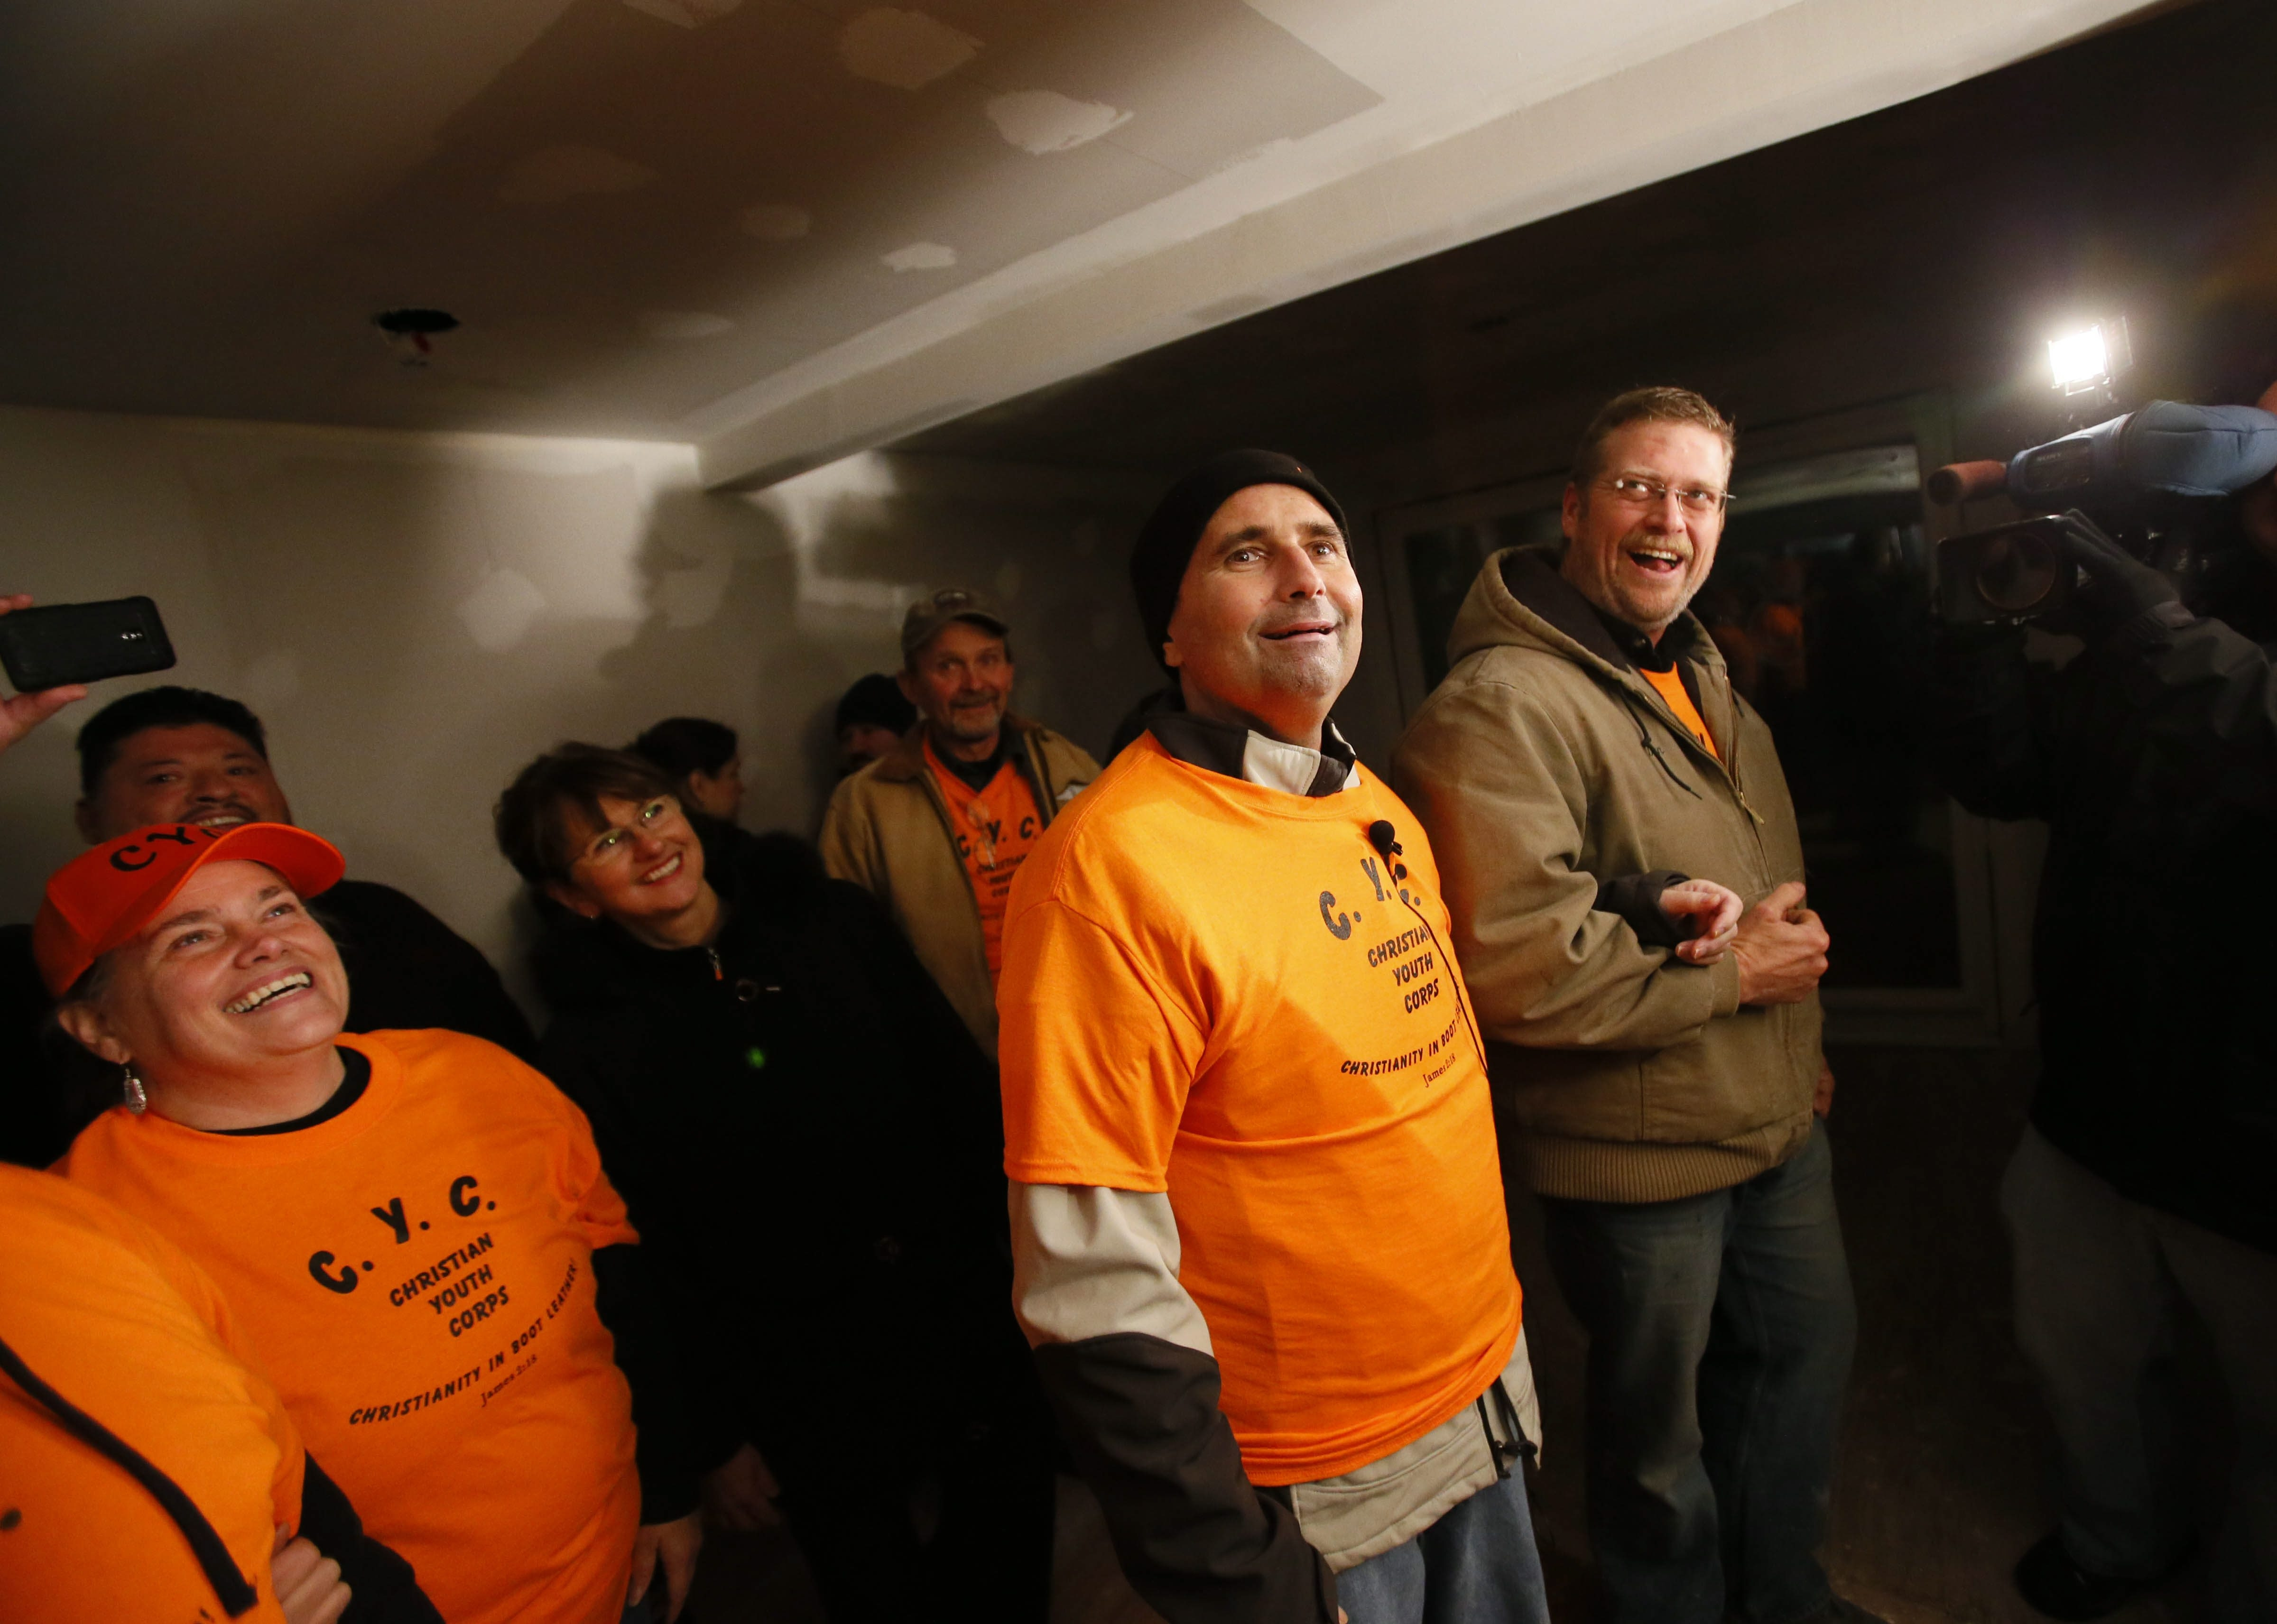 Norm Reformat, center, can hardly believe his eyes as he walks into his home after being released from ECMC on Tuesday. Dozens of volunteers have been renovating the home in Reformat's absence.